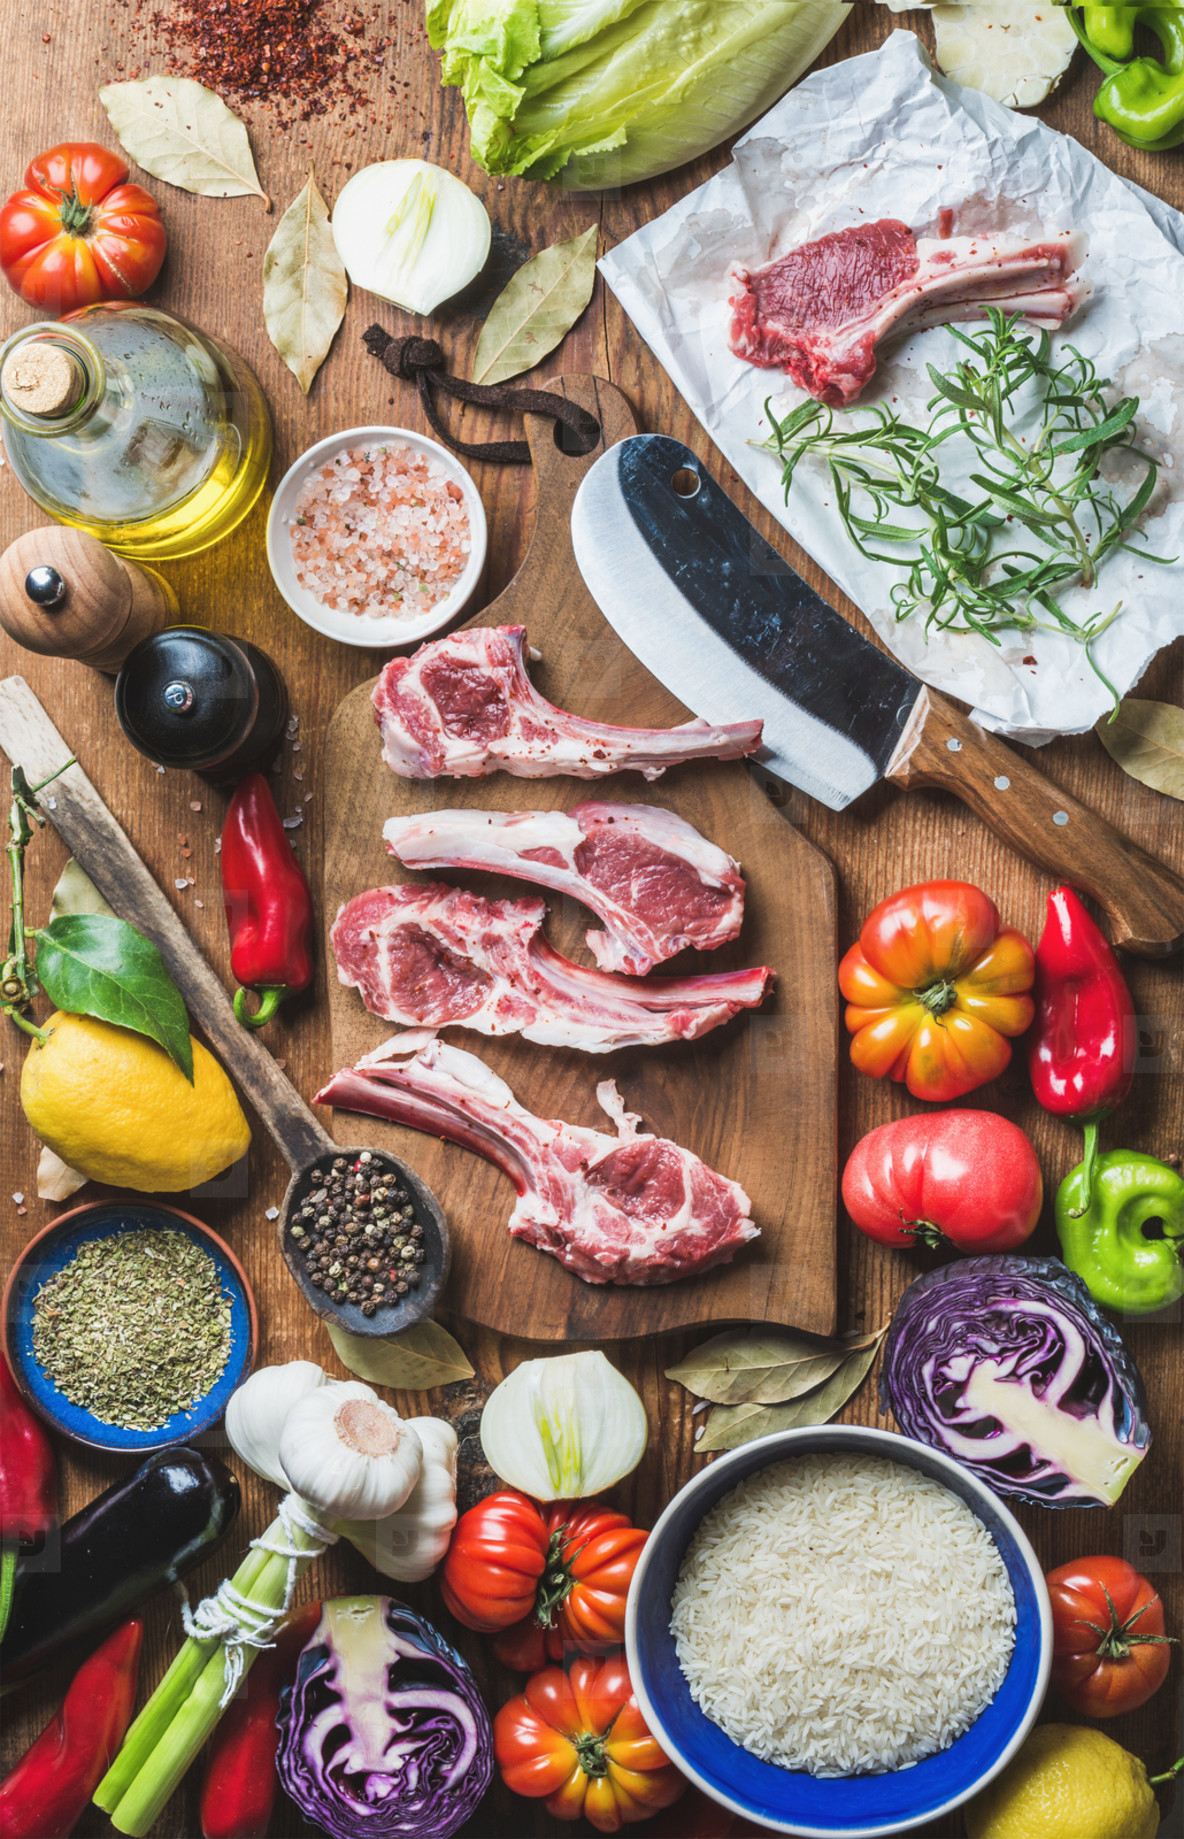 Raw uncooked lamb meat chops  rice  oil  spices and vegetables